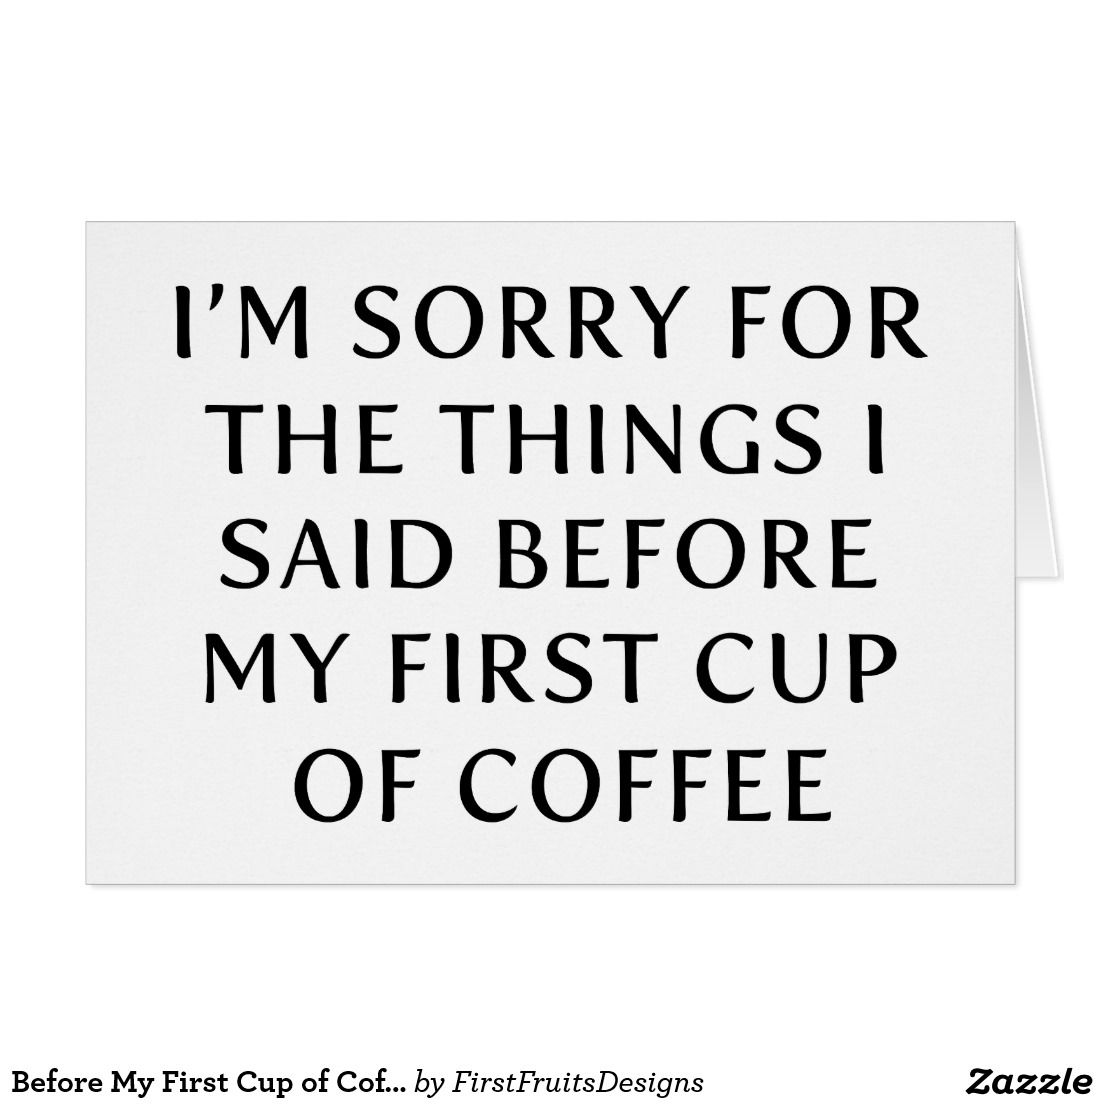 Before My First Cup of Coffee Card